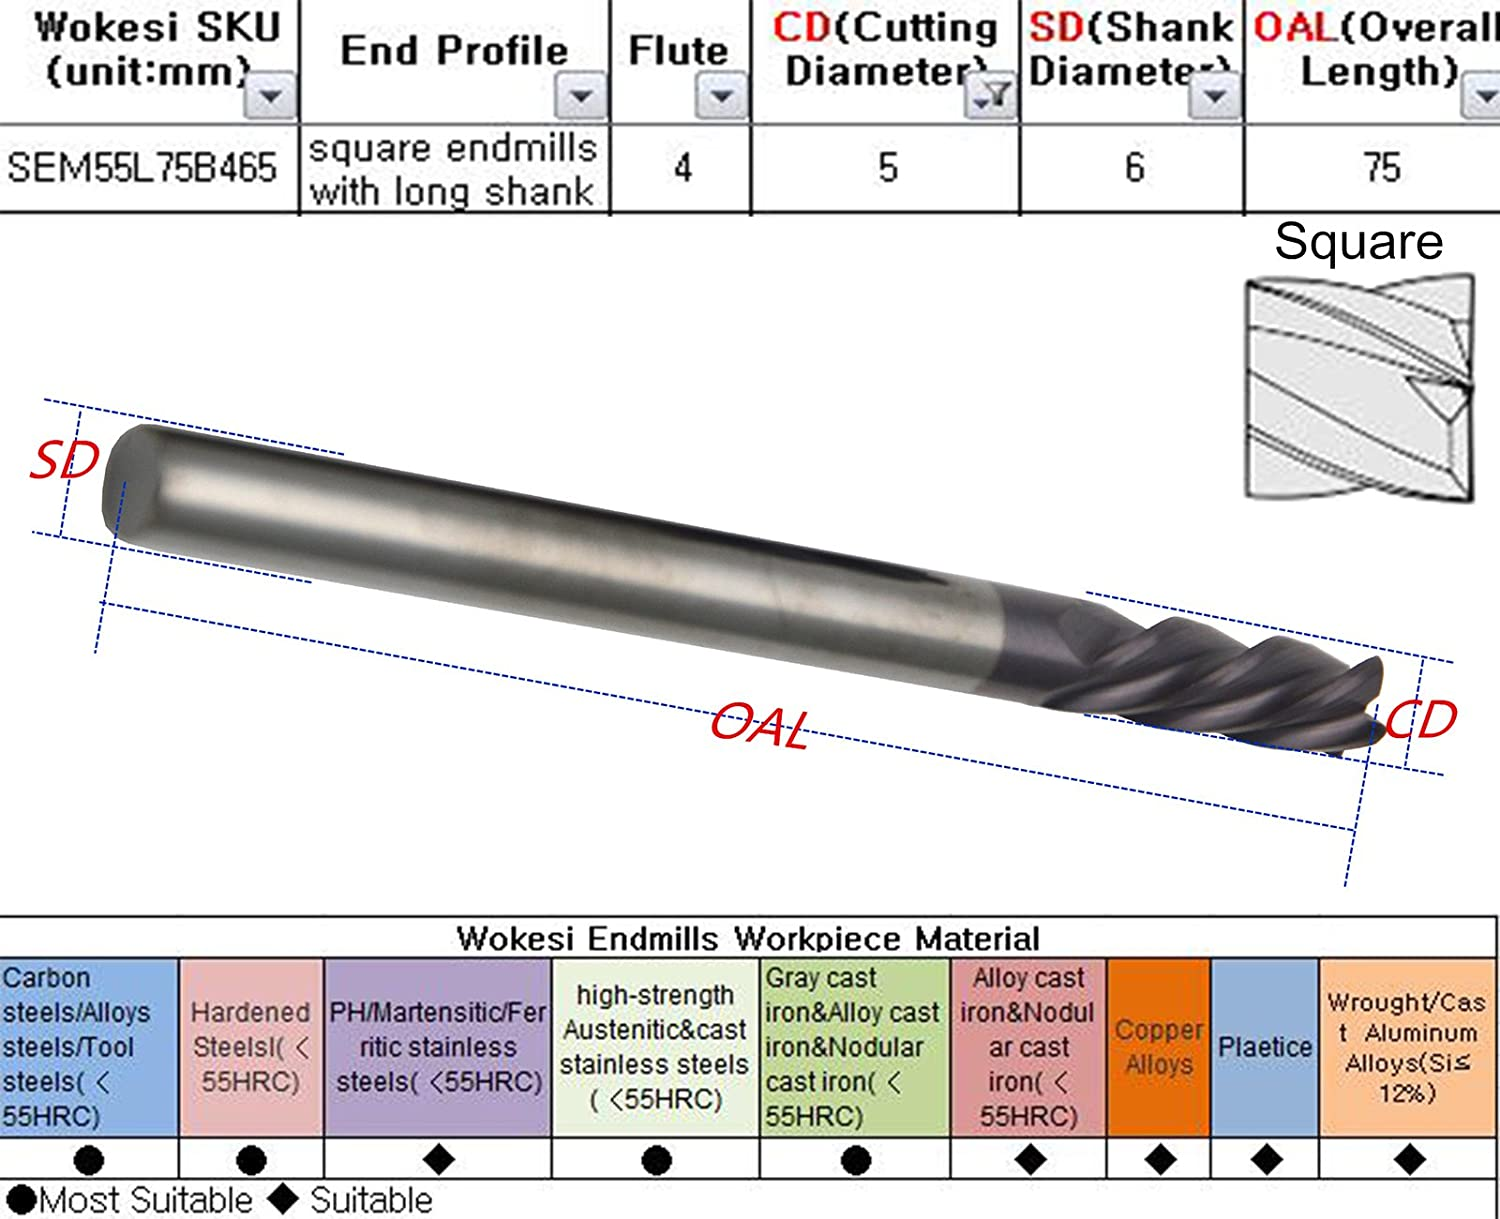 Wokesi 6mm Cutting Diameter,6mm Shank Diameter,150mm Overall length,Extra Long,HRC55,4 Flutes,TiAlN Coated,Solid Carbide,Square End Mill CNC Router Bits 6mmDia/×6mmShank/×150mmOA